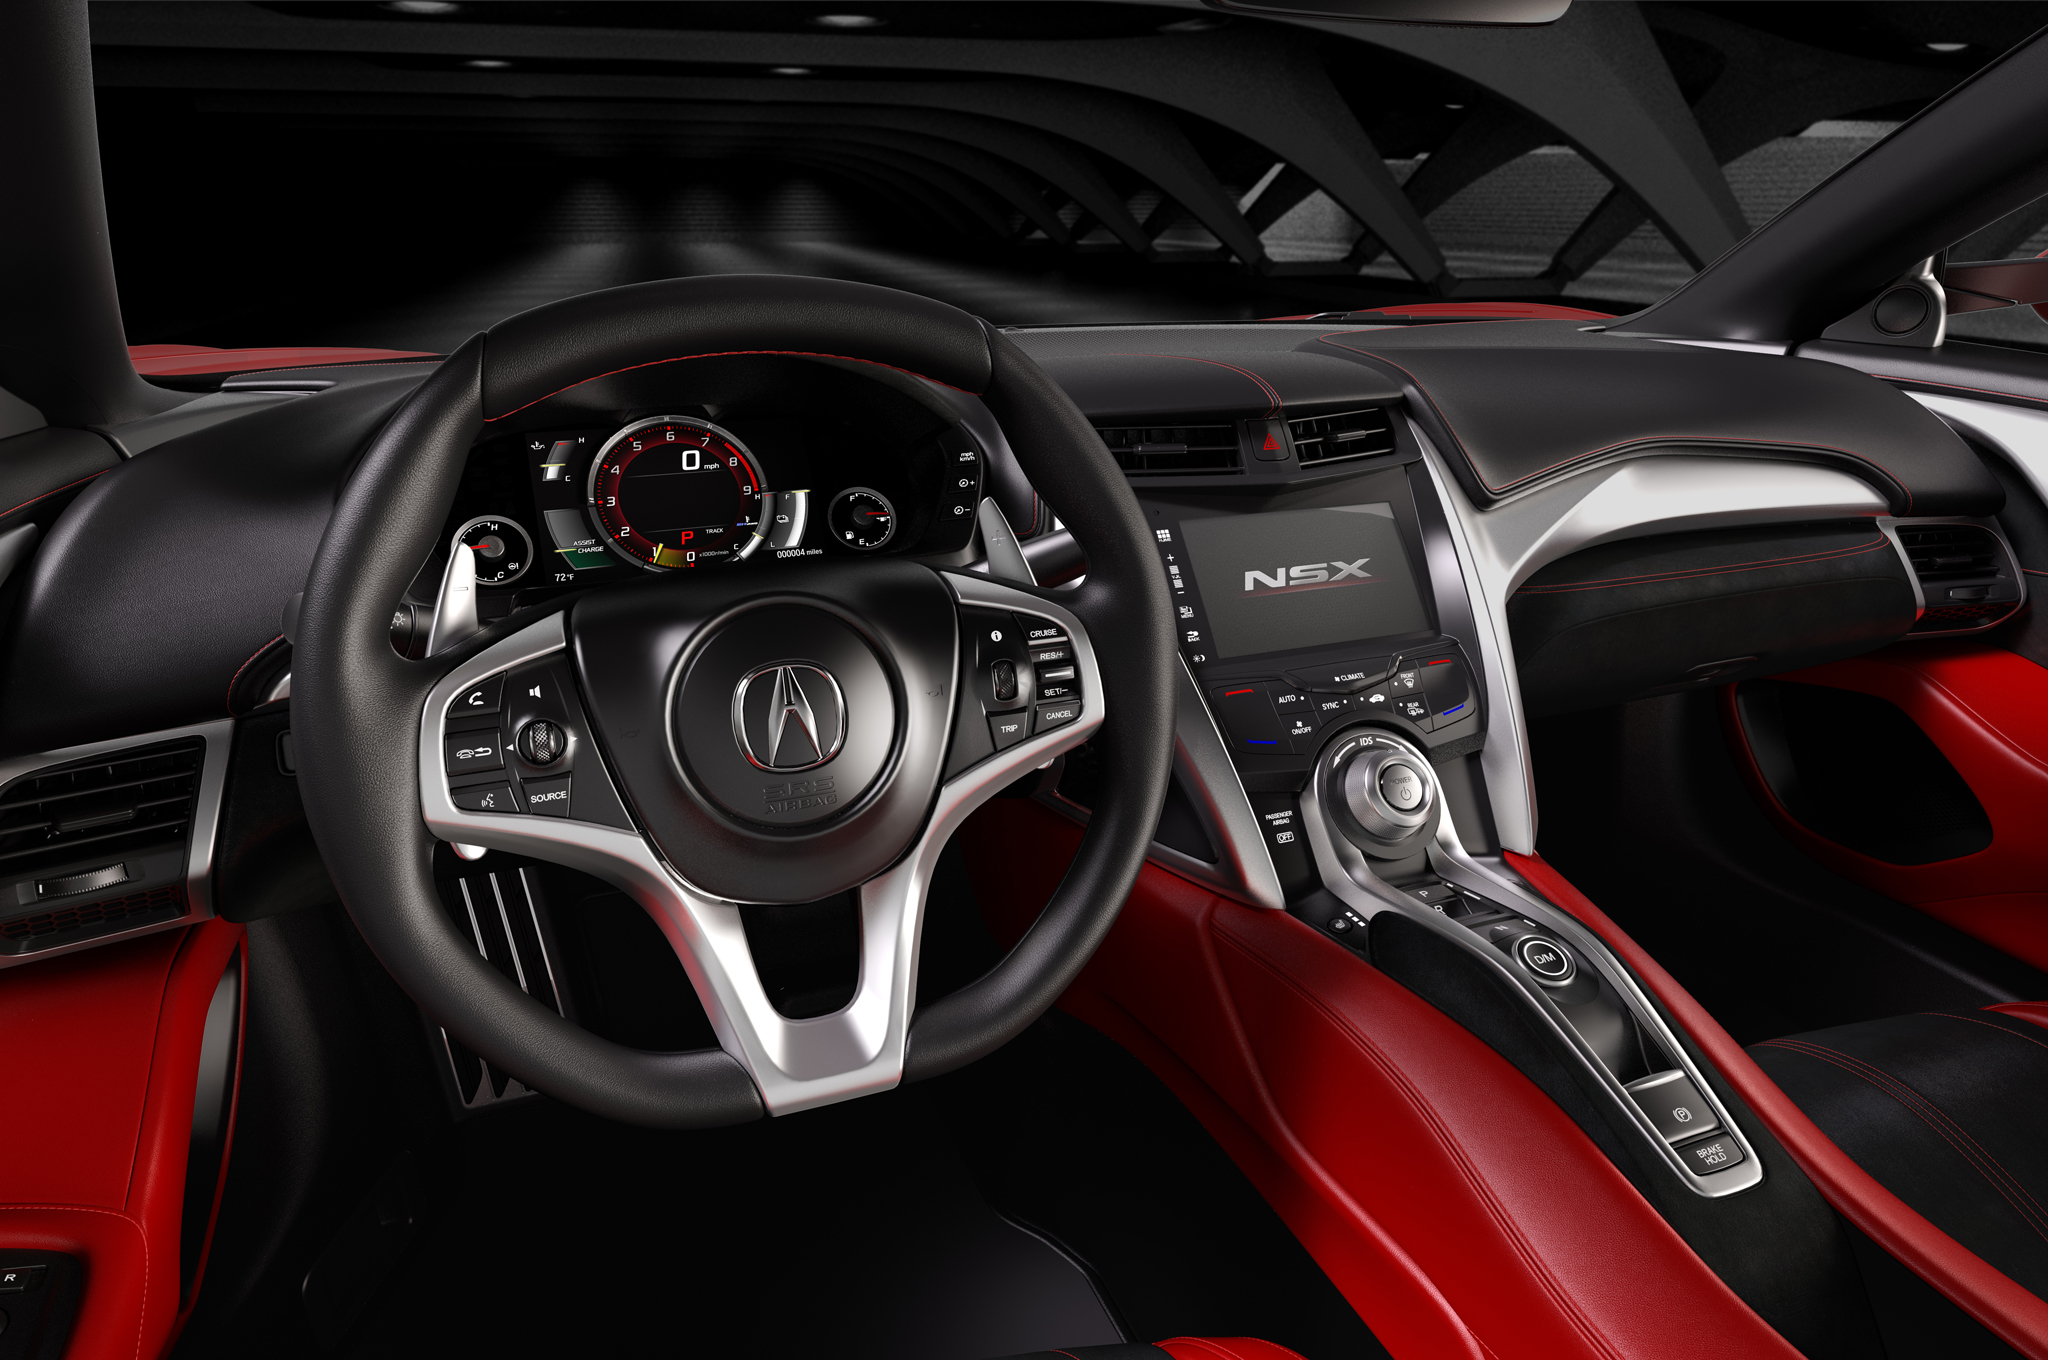 2016 acura nsx cockpit and speedometer 1008 cars. Black Bedroom Furniture Sets. Home Design Ideas